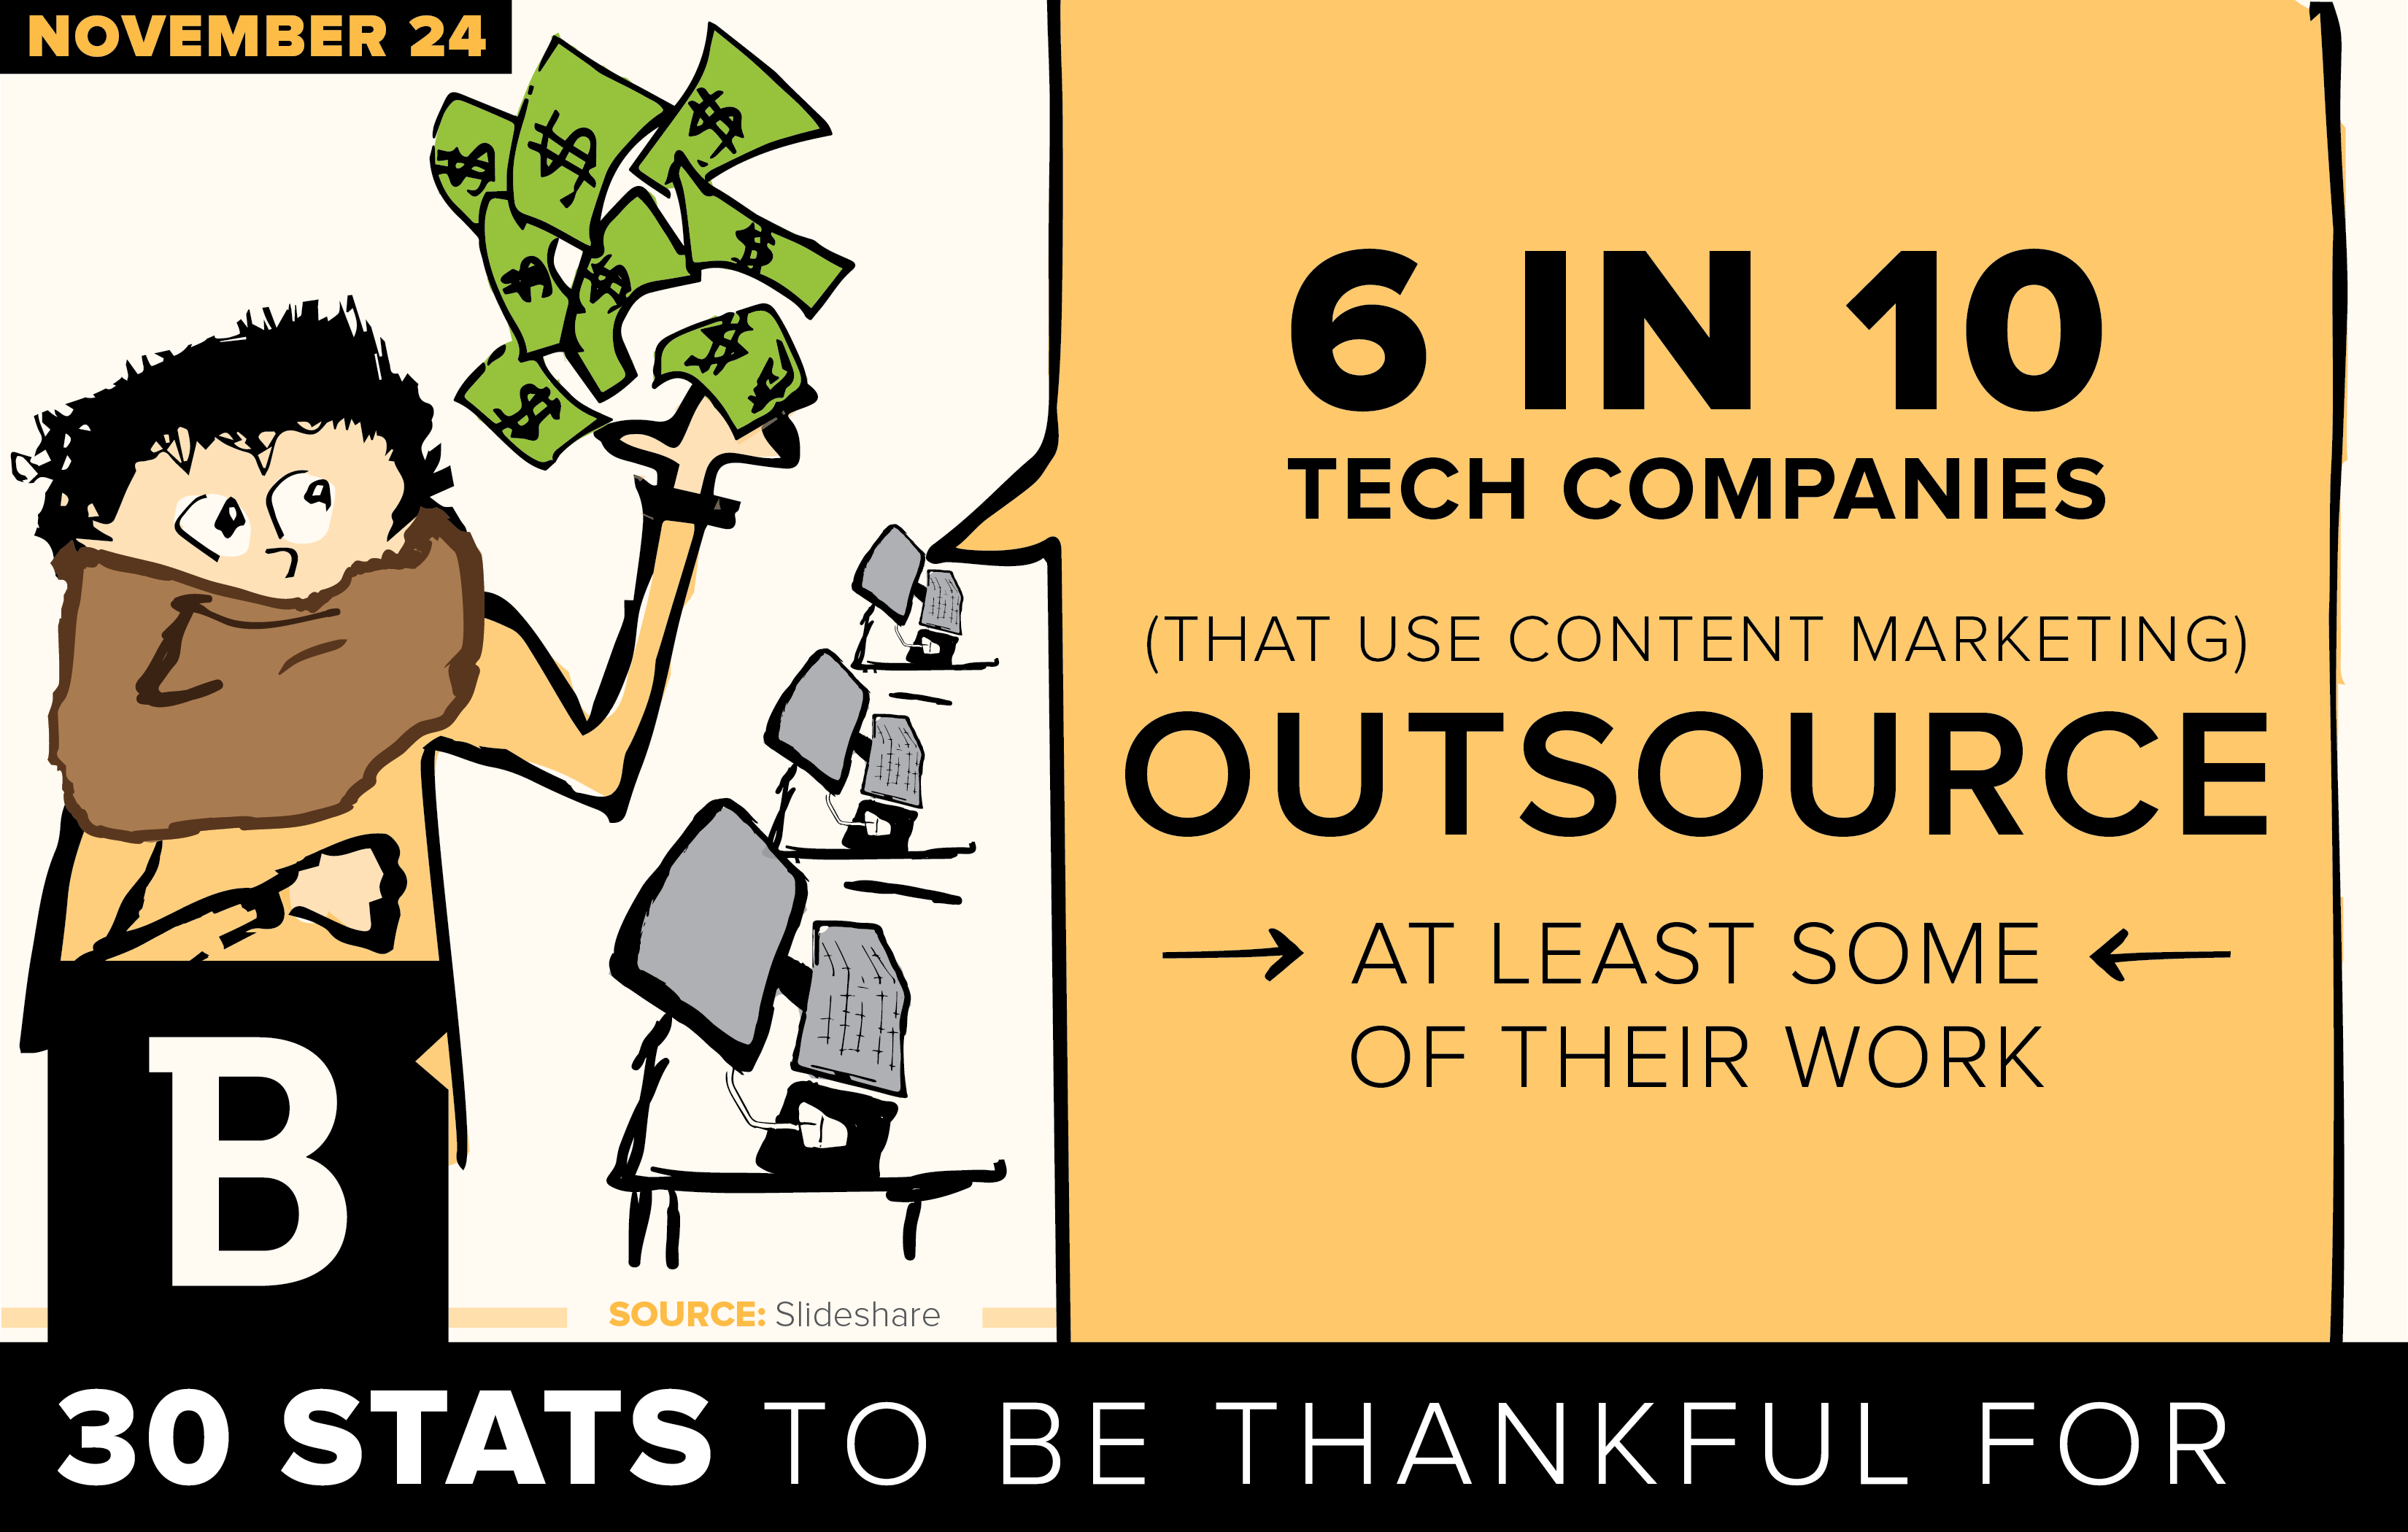 A study found technology companies are outsourcing their content creation.